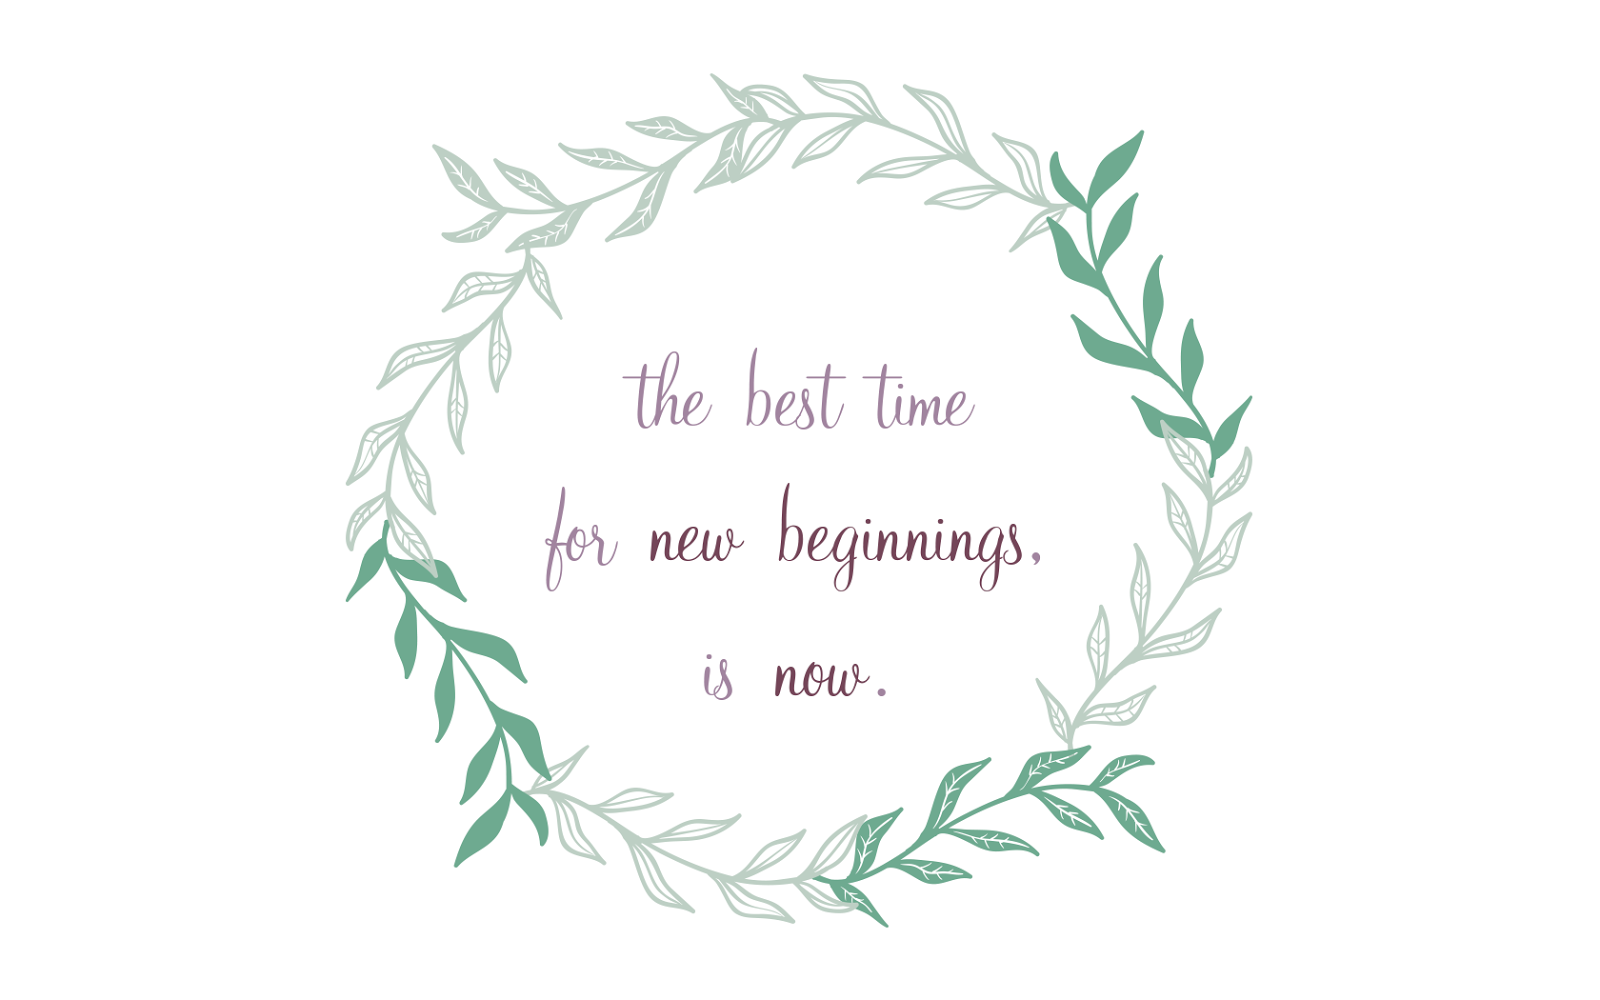 best time for new beginnings, mai paper shop, desktop wallpaper, downloadable wallpaper, free digital download